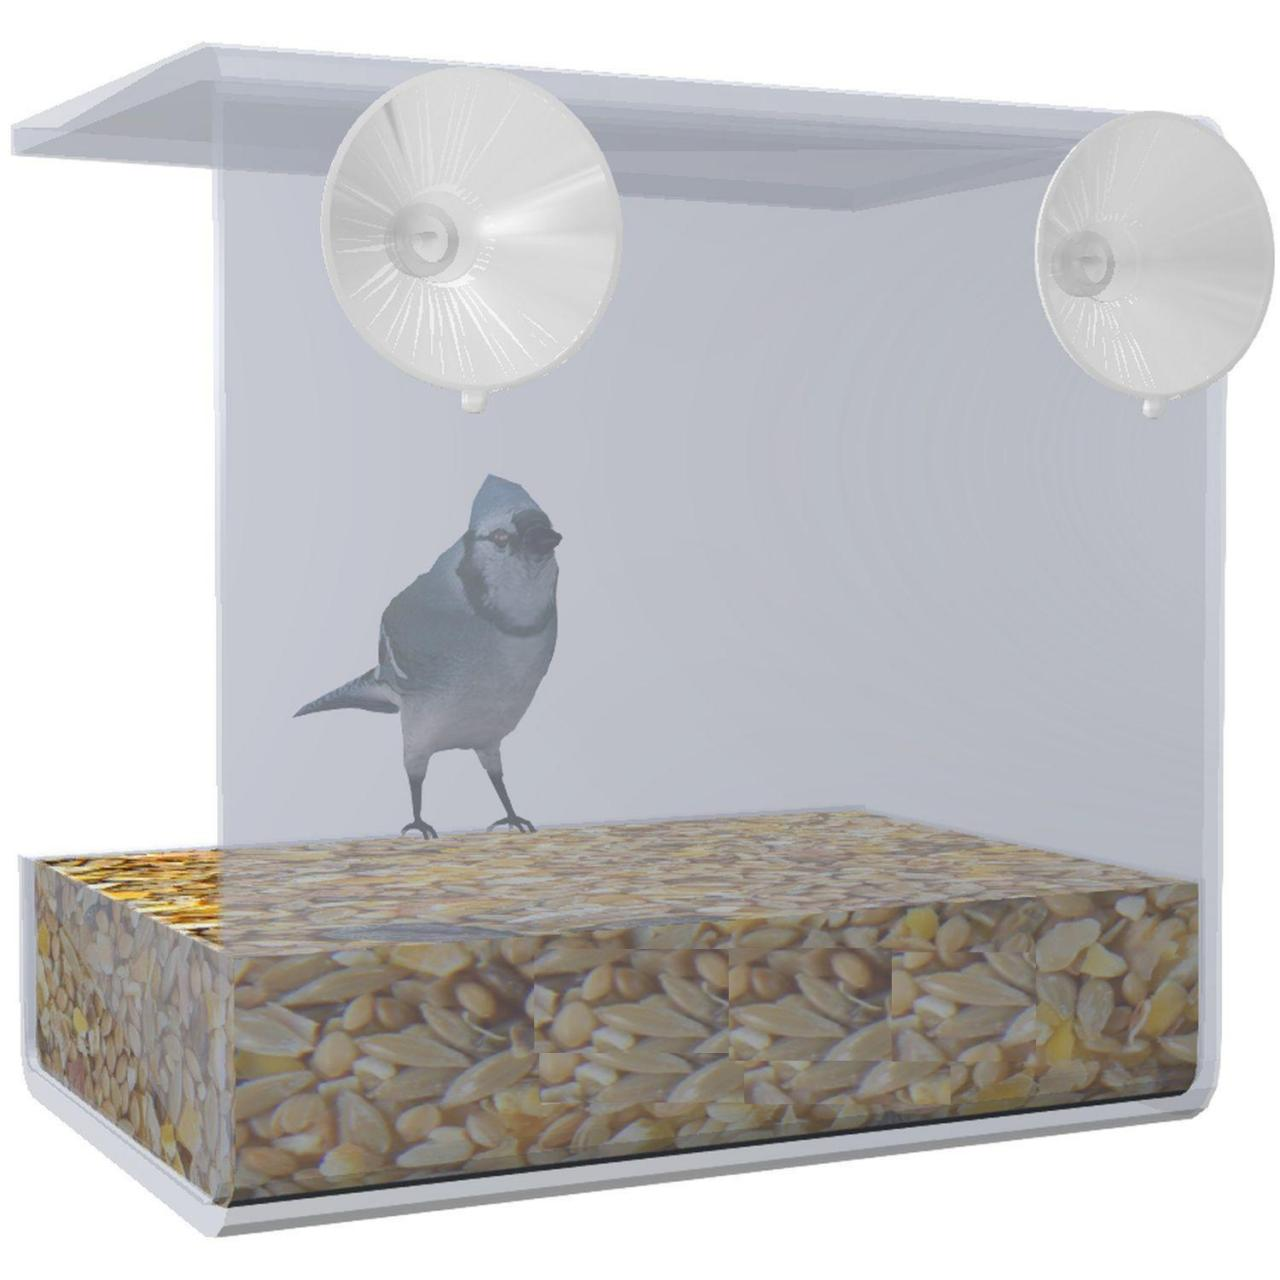 Buy cheap Acrylic Clear View Window Bird Feeder from wholesalers